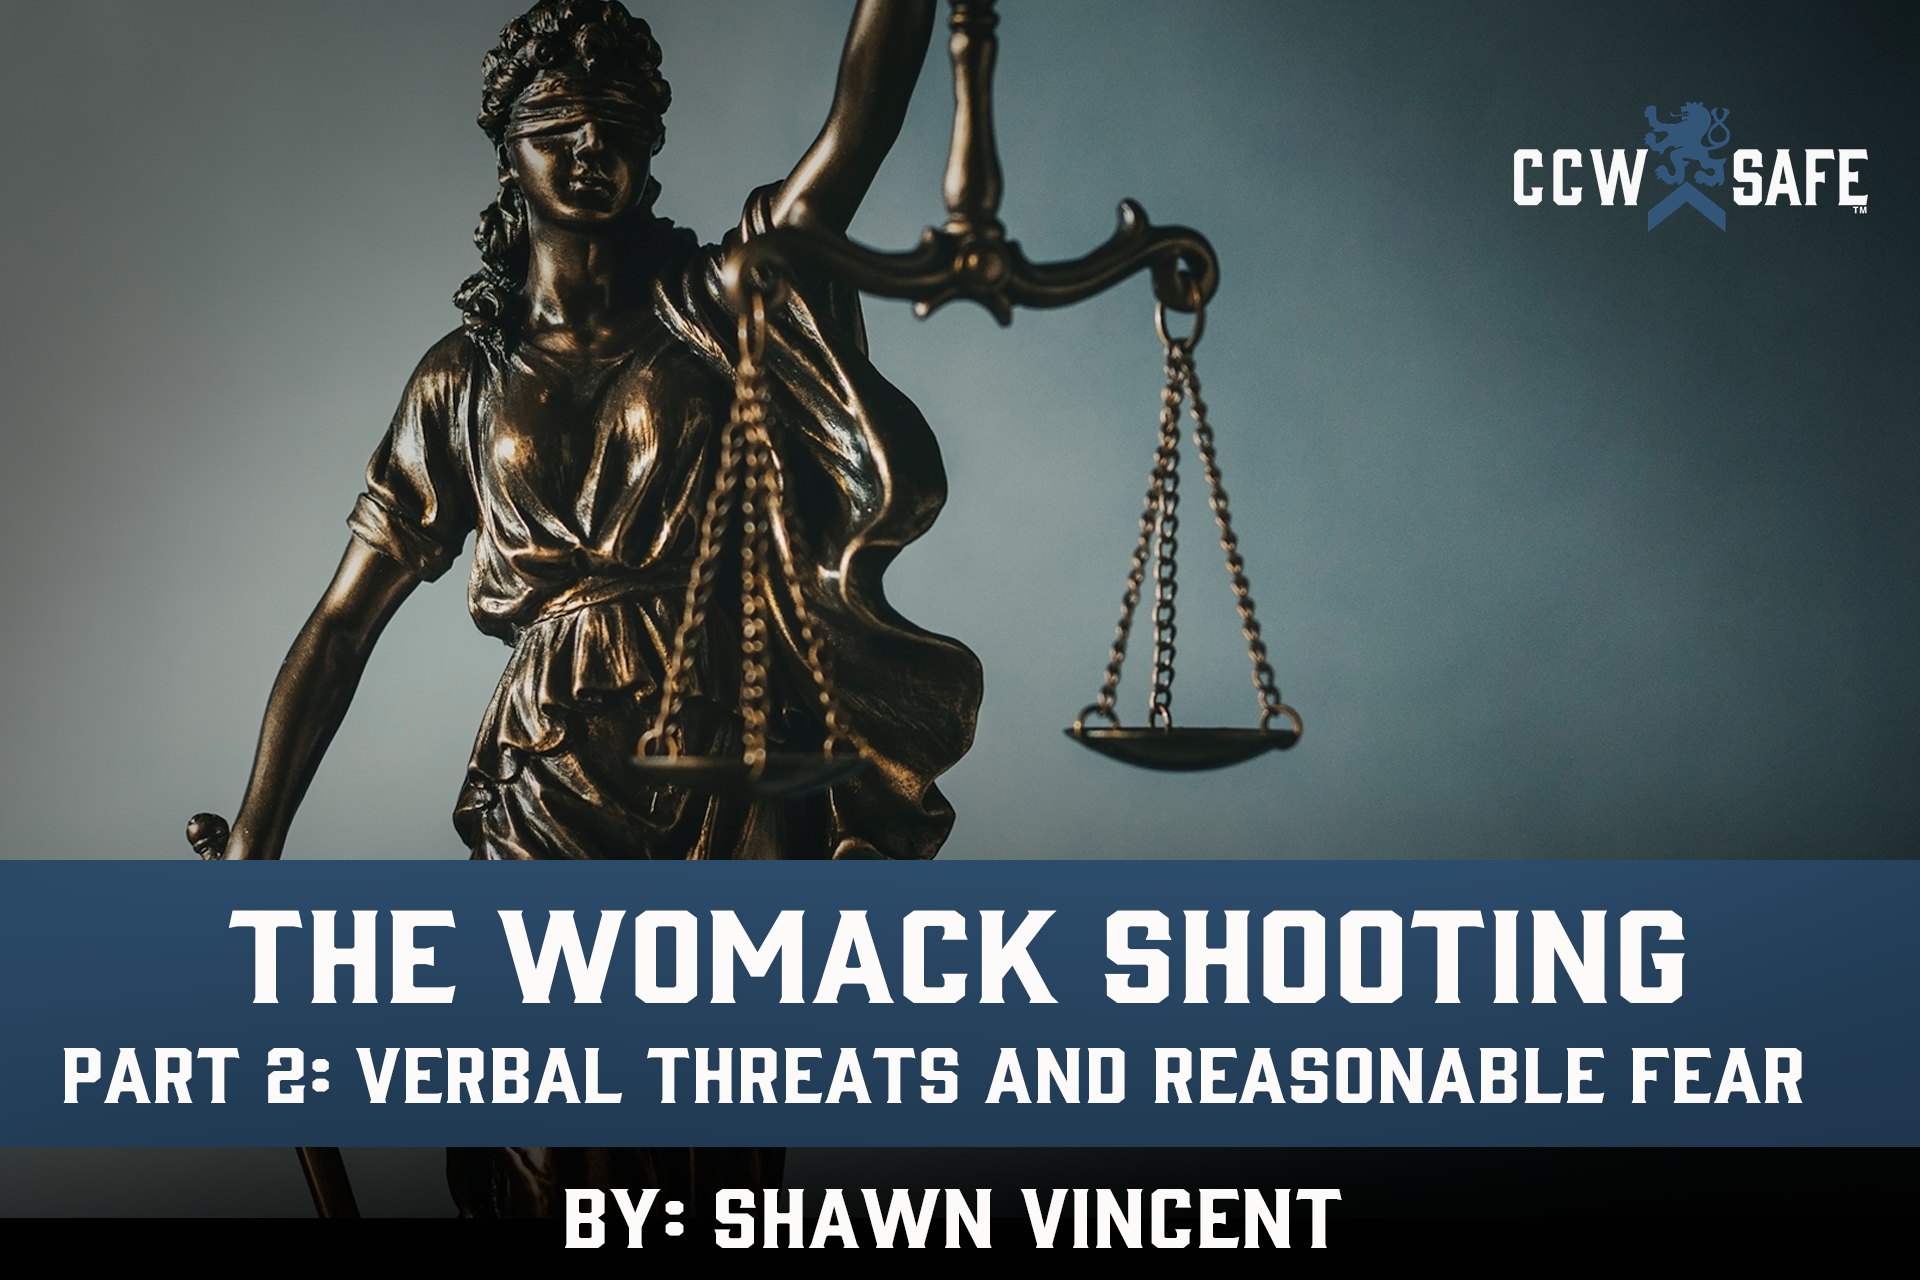 The Womack Shooting Part 2: Verbal Threats and Reasonable Fear